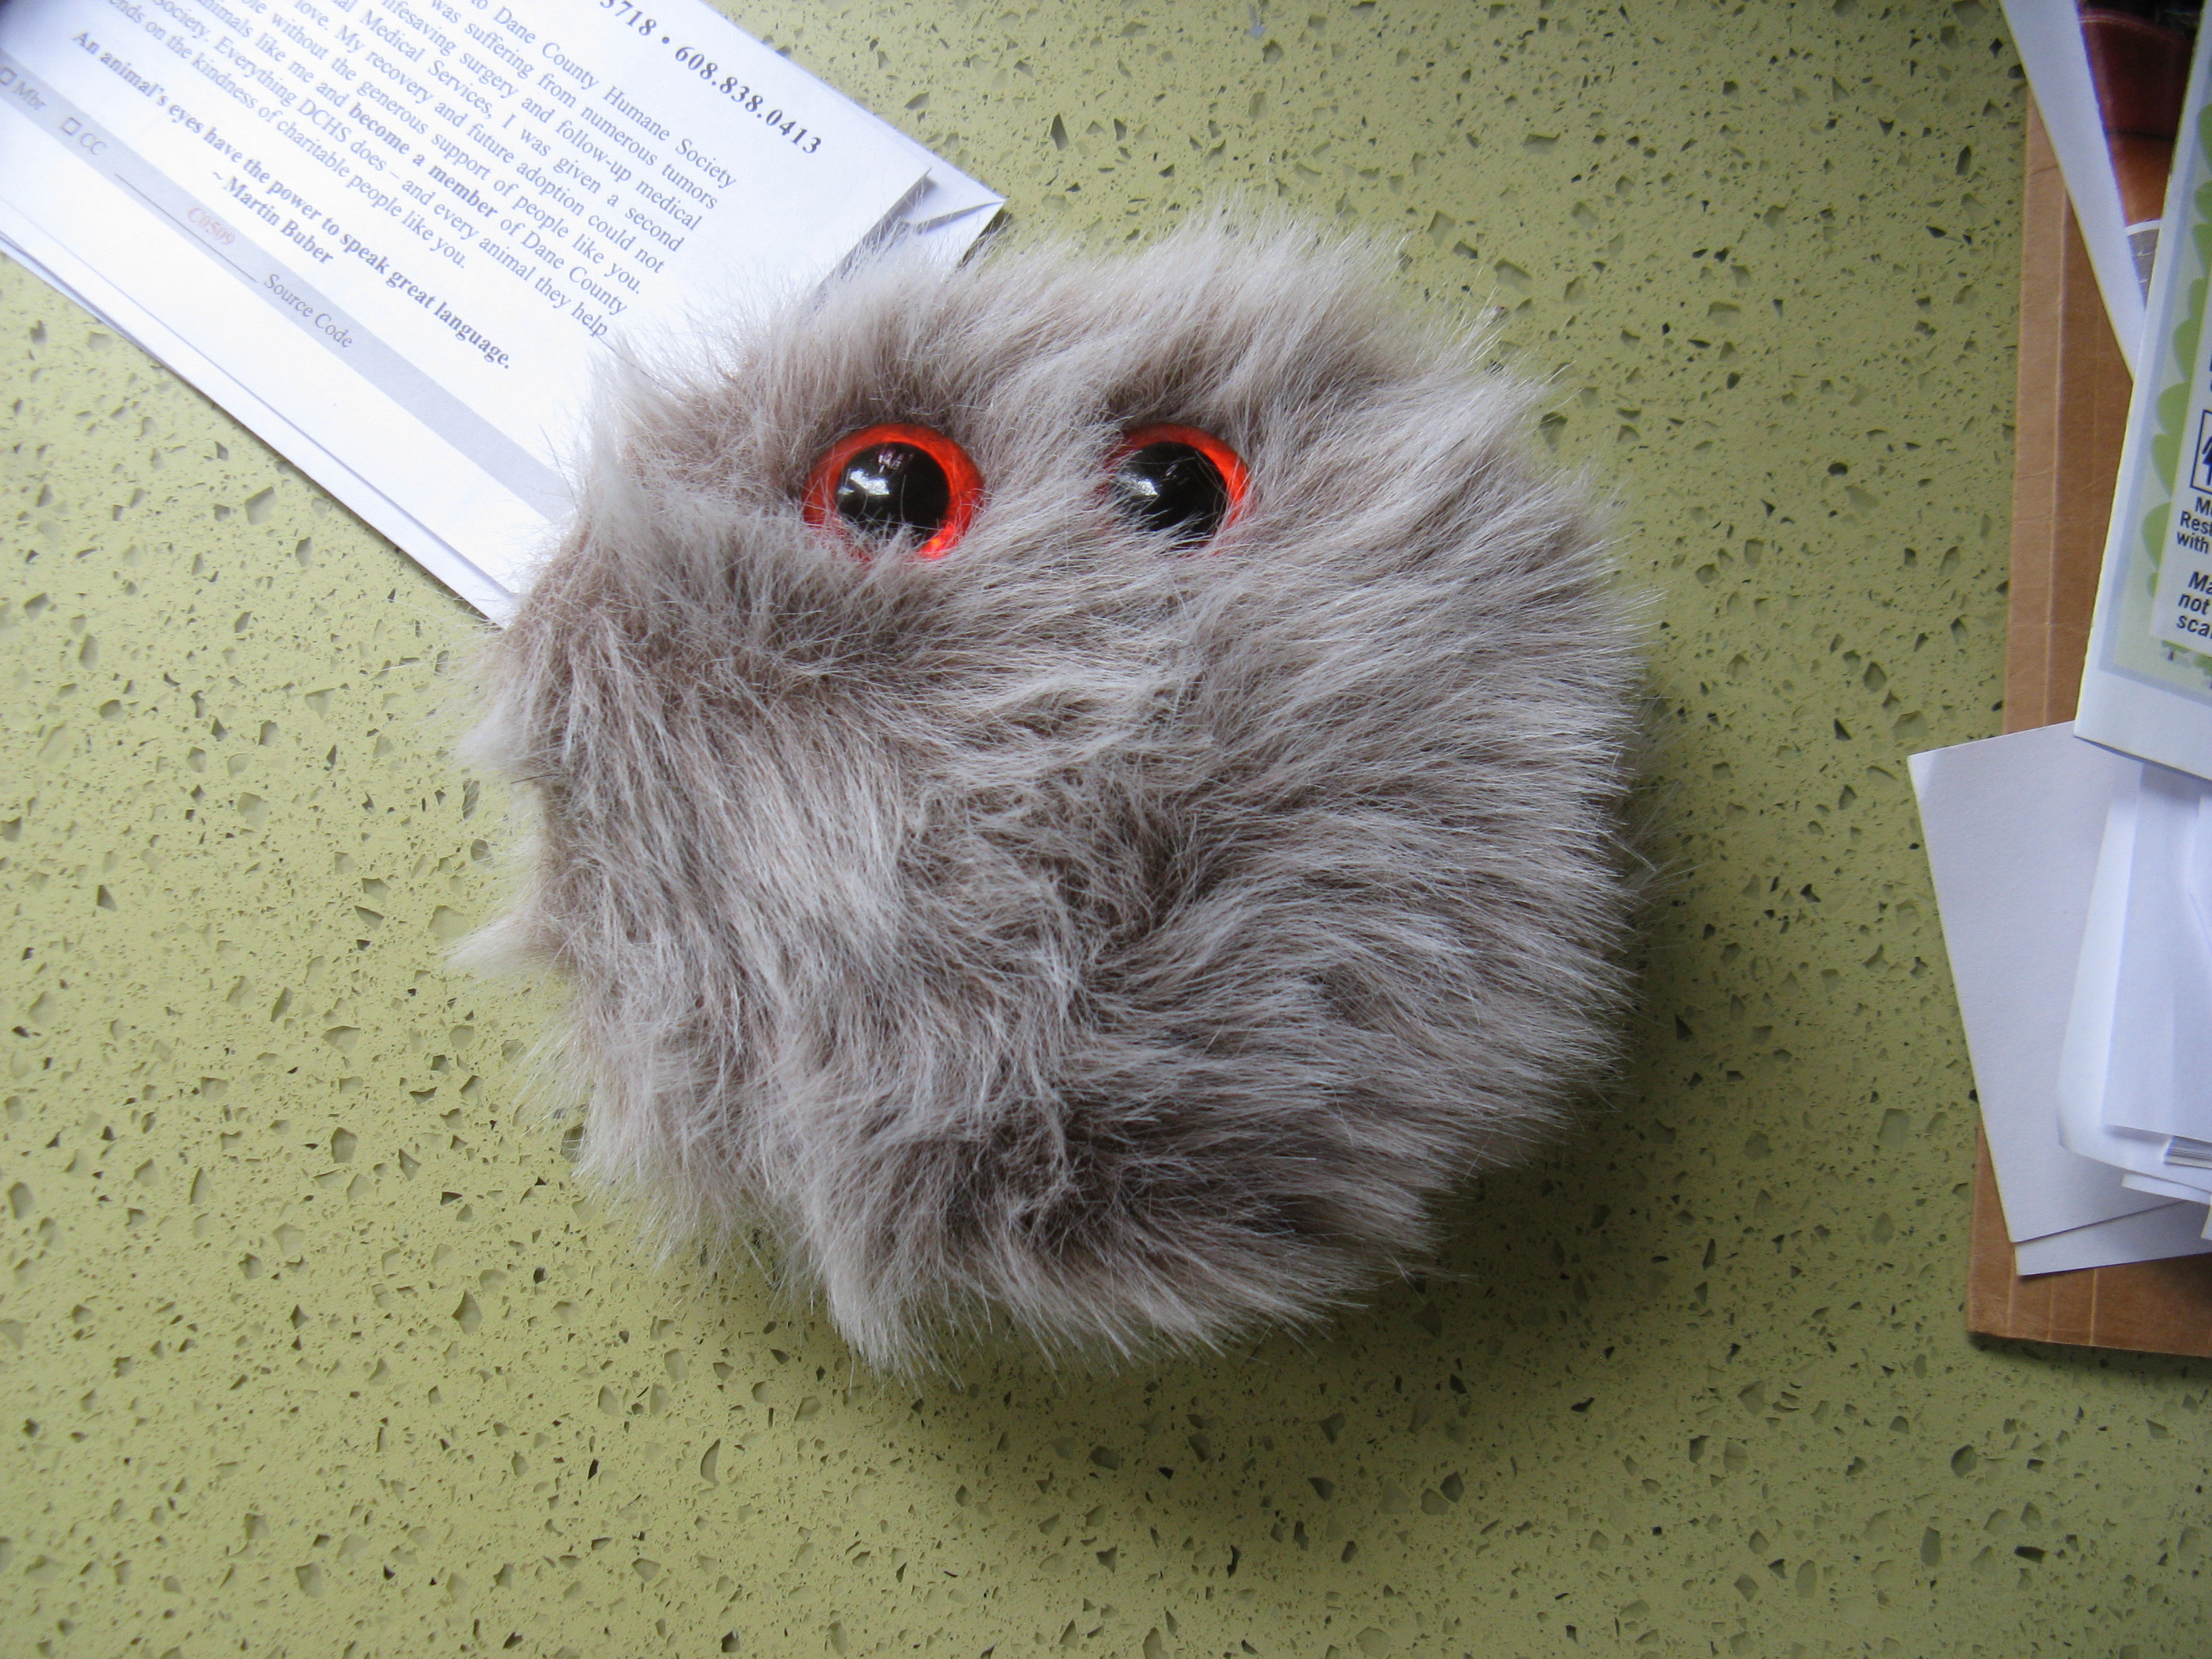 The Fuzzmeister: A Small, Furry Friend